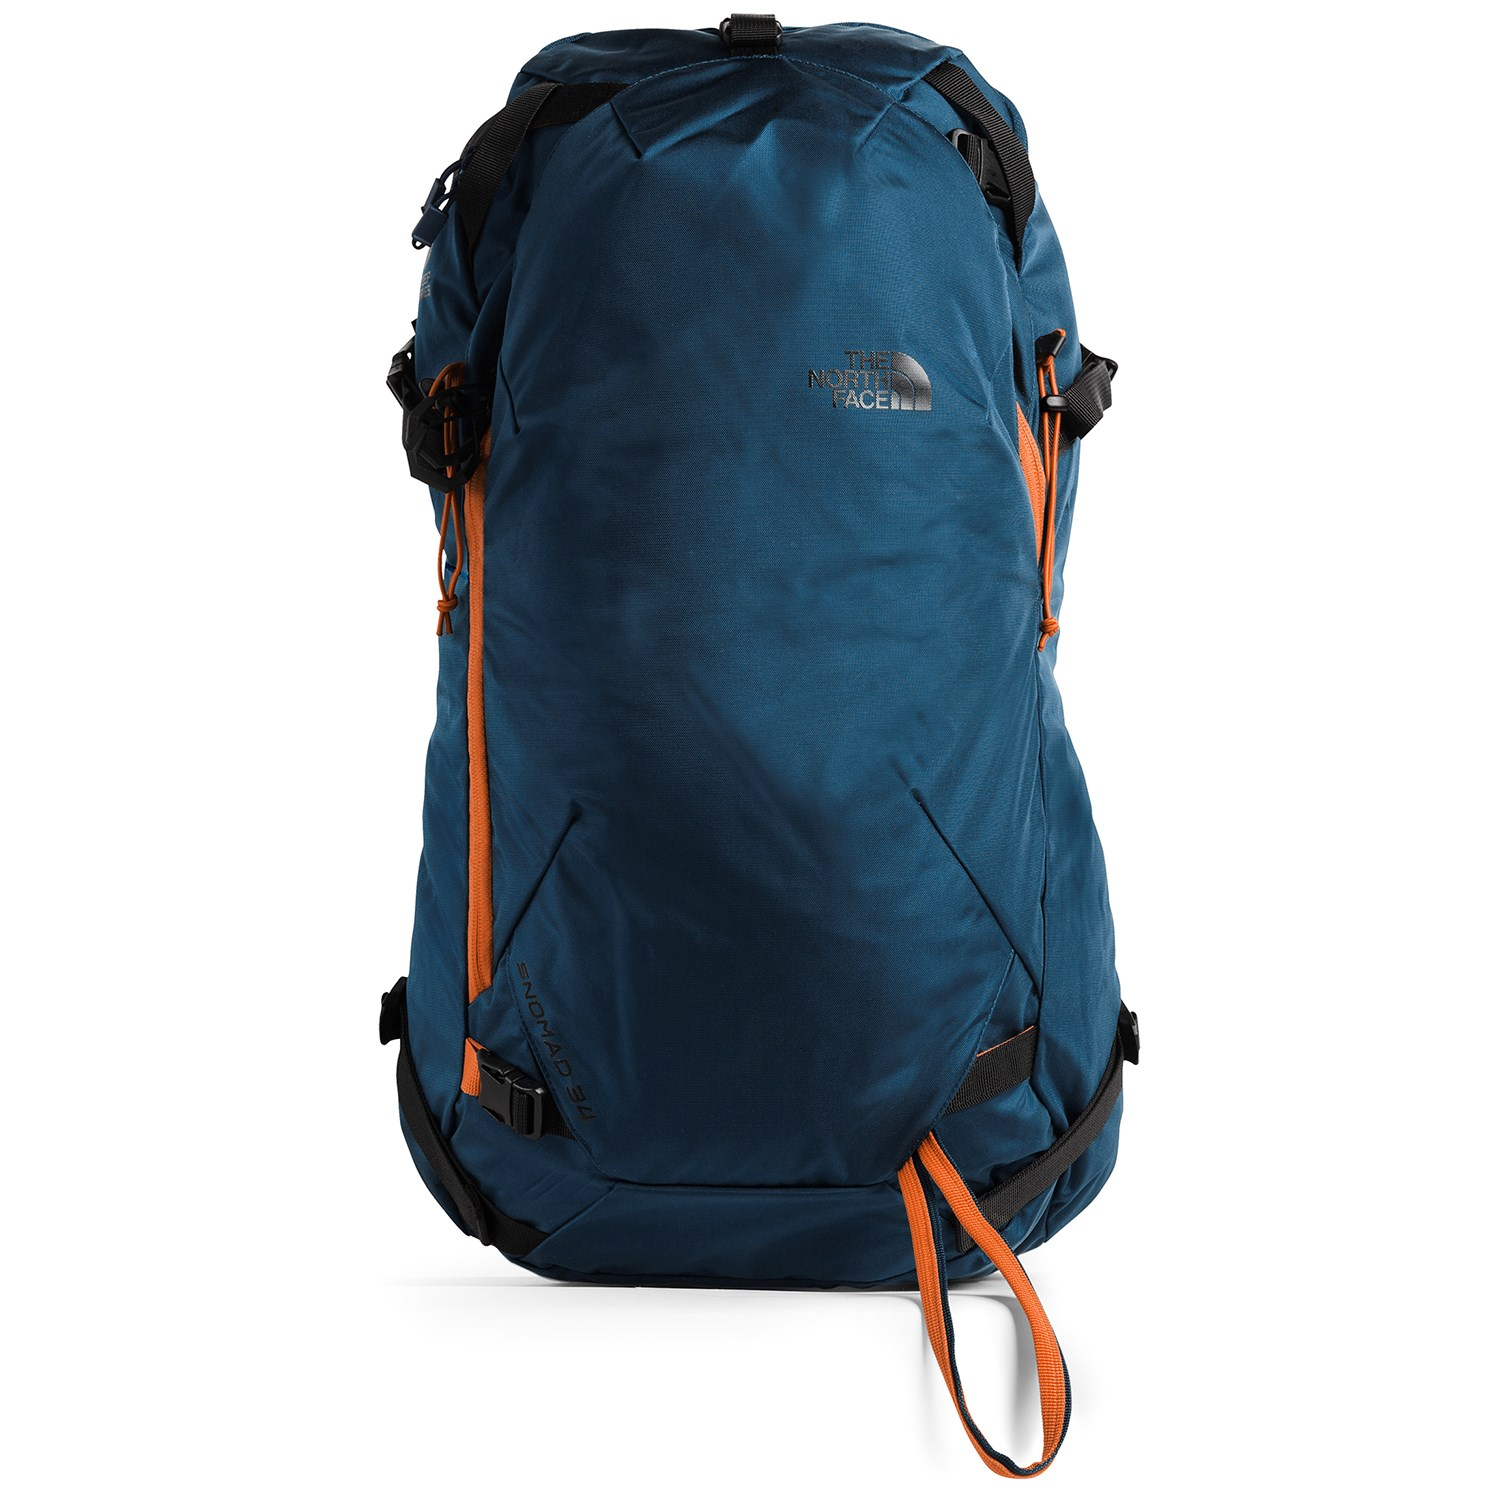 59b446f94 The North Face Snomad 34 Backpack